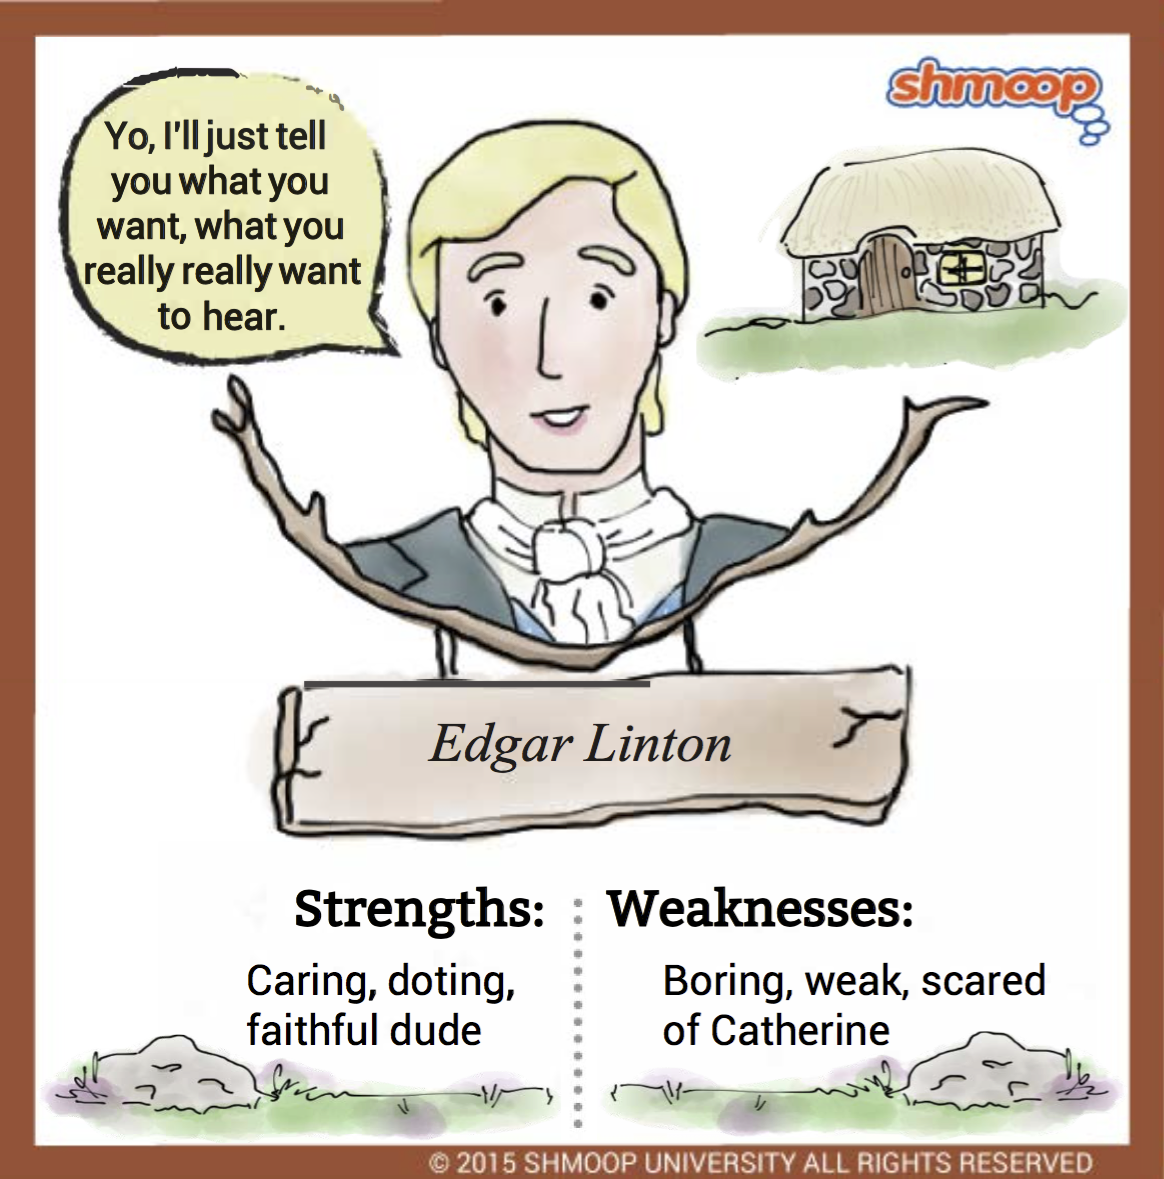 edgar linton in wuthering heights chart view able image